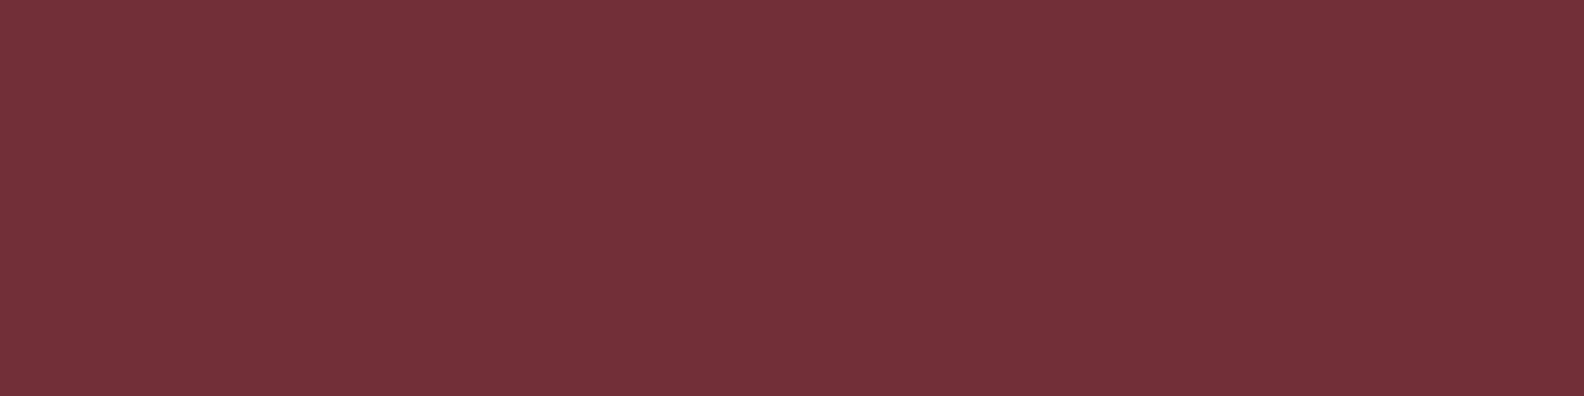 1584x396 Wine Solid Color Background